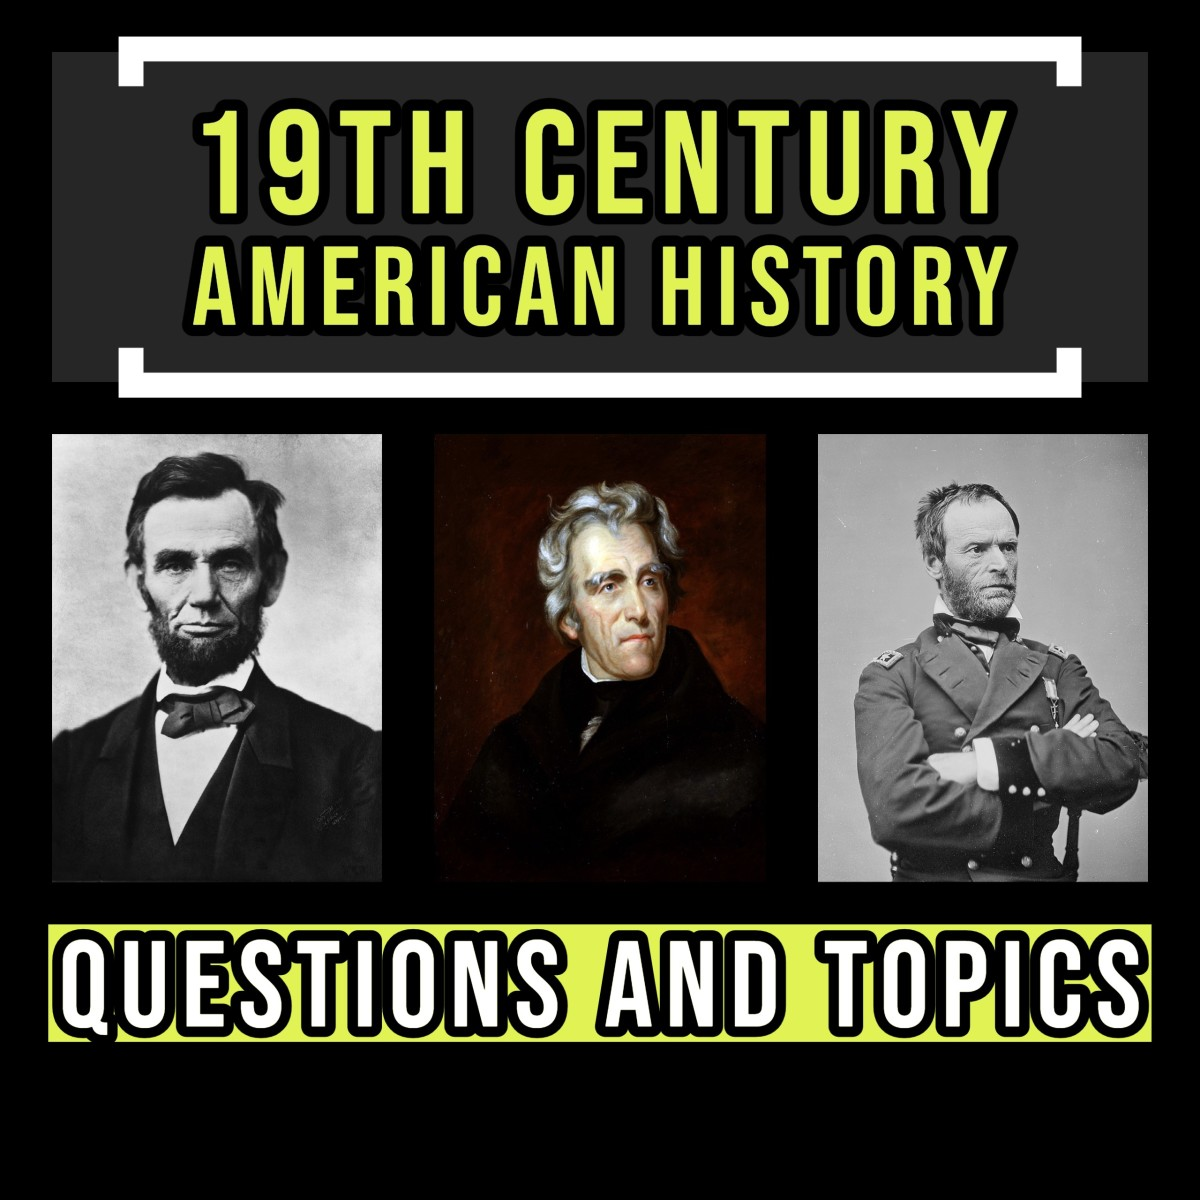 19th Century American history questions.